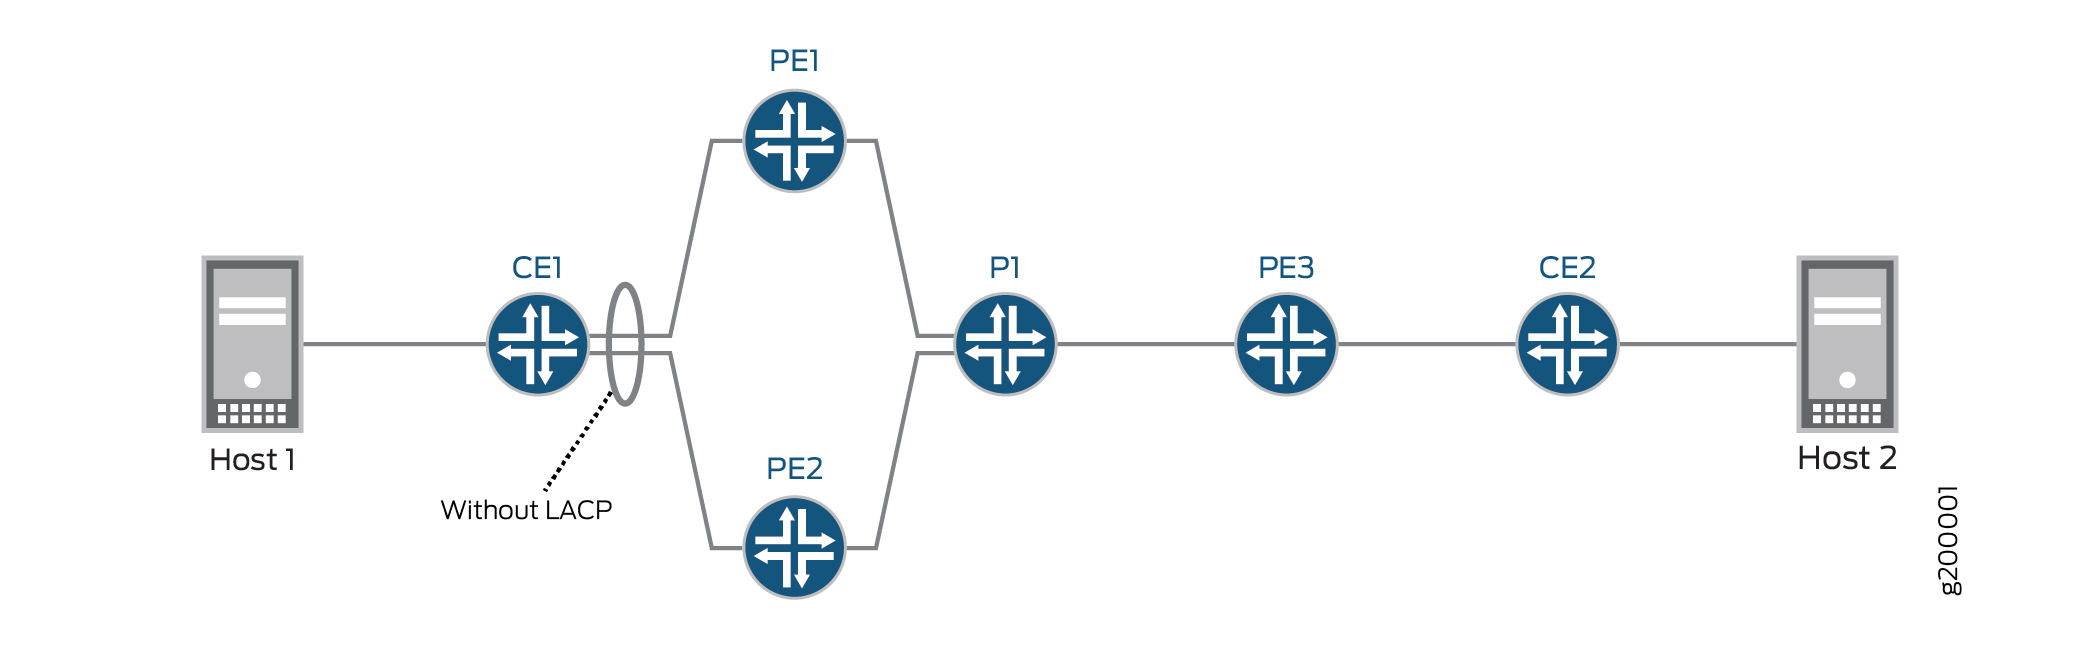 Simple EVPN Multihomed Topology